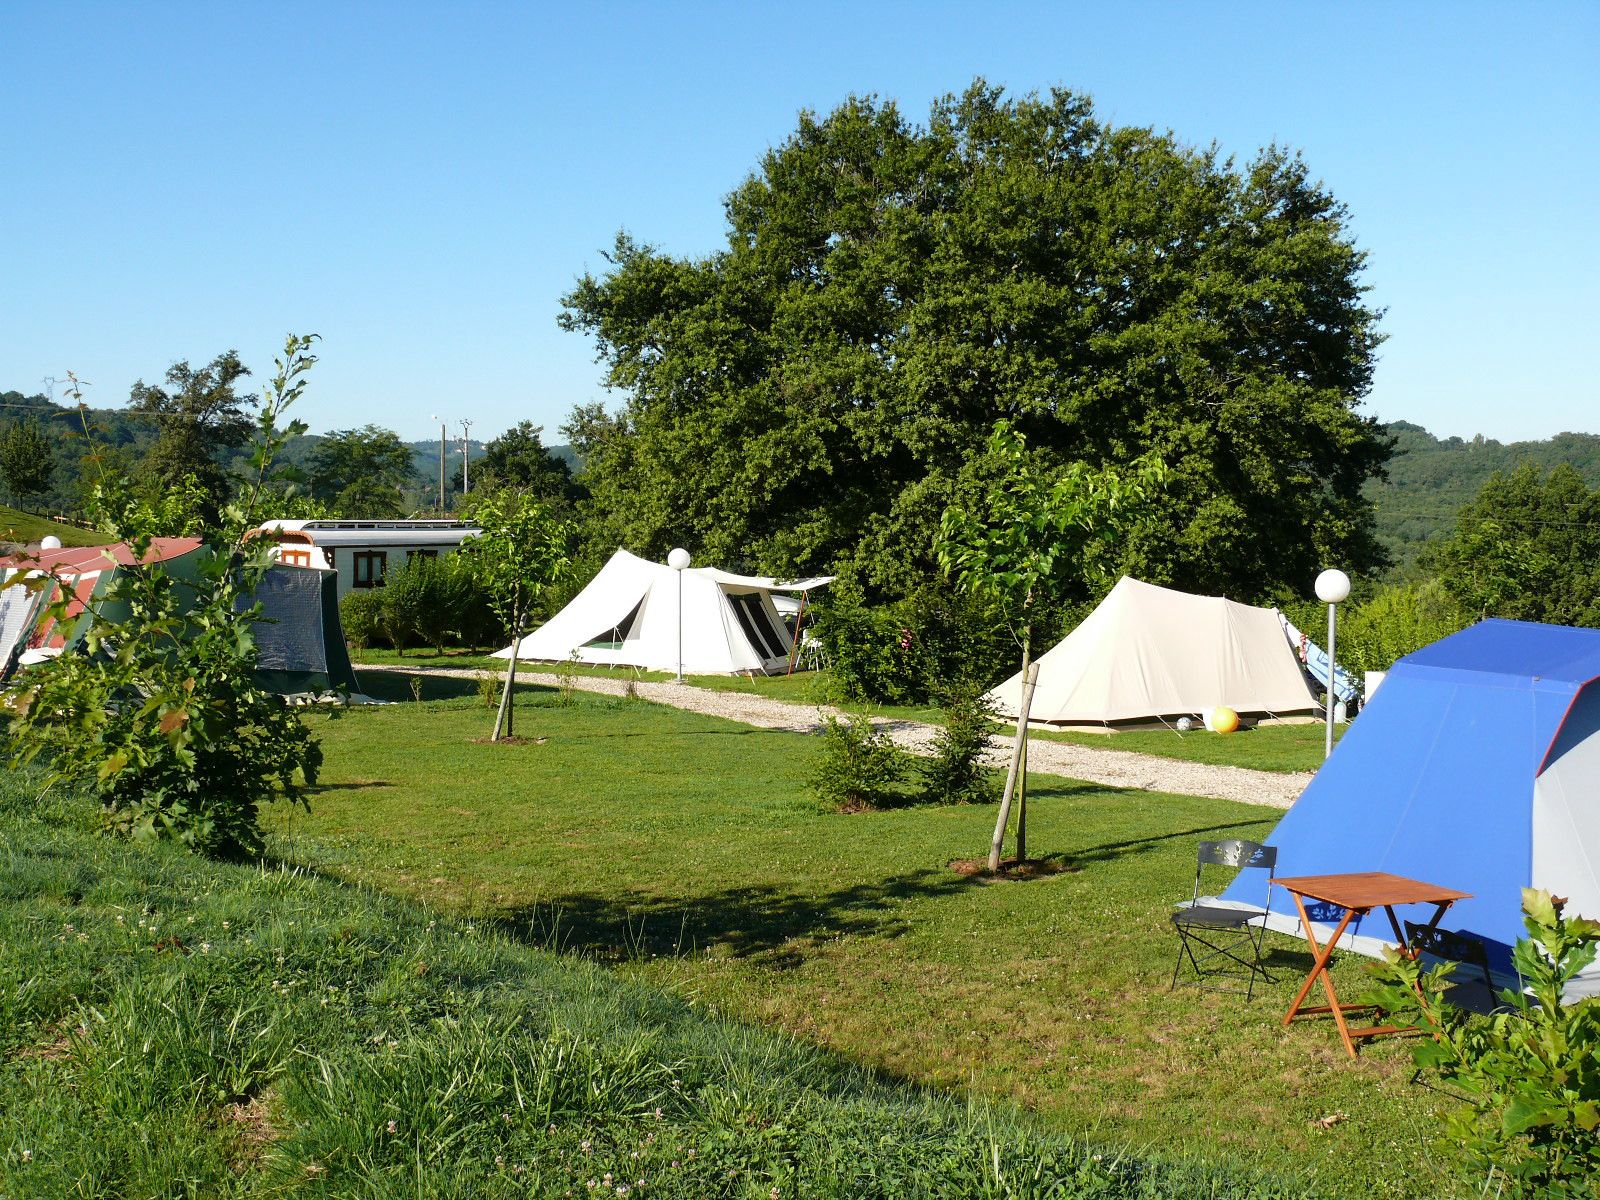 Scenery and serenity, perfect camping in the peaceful hills of Limousin.